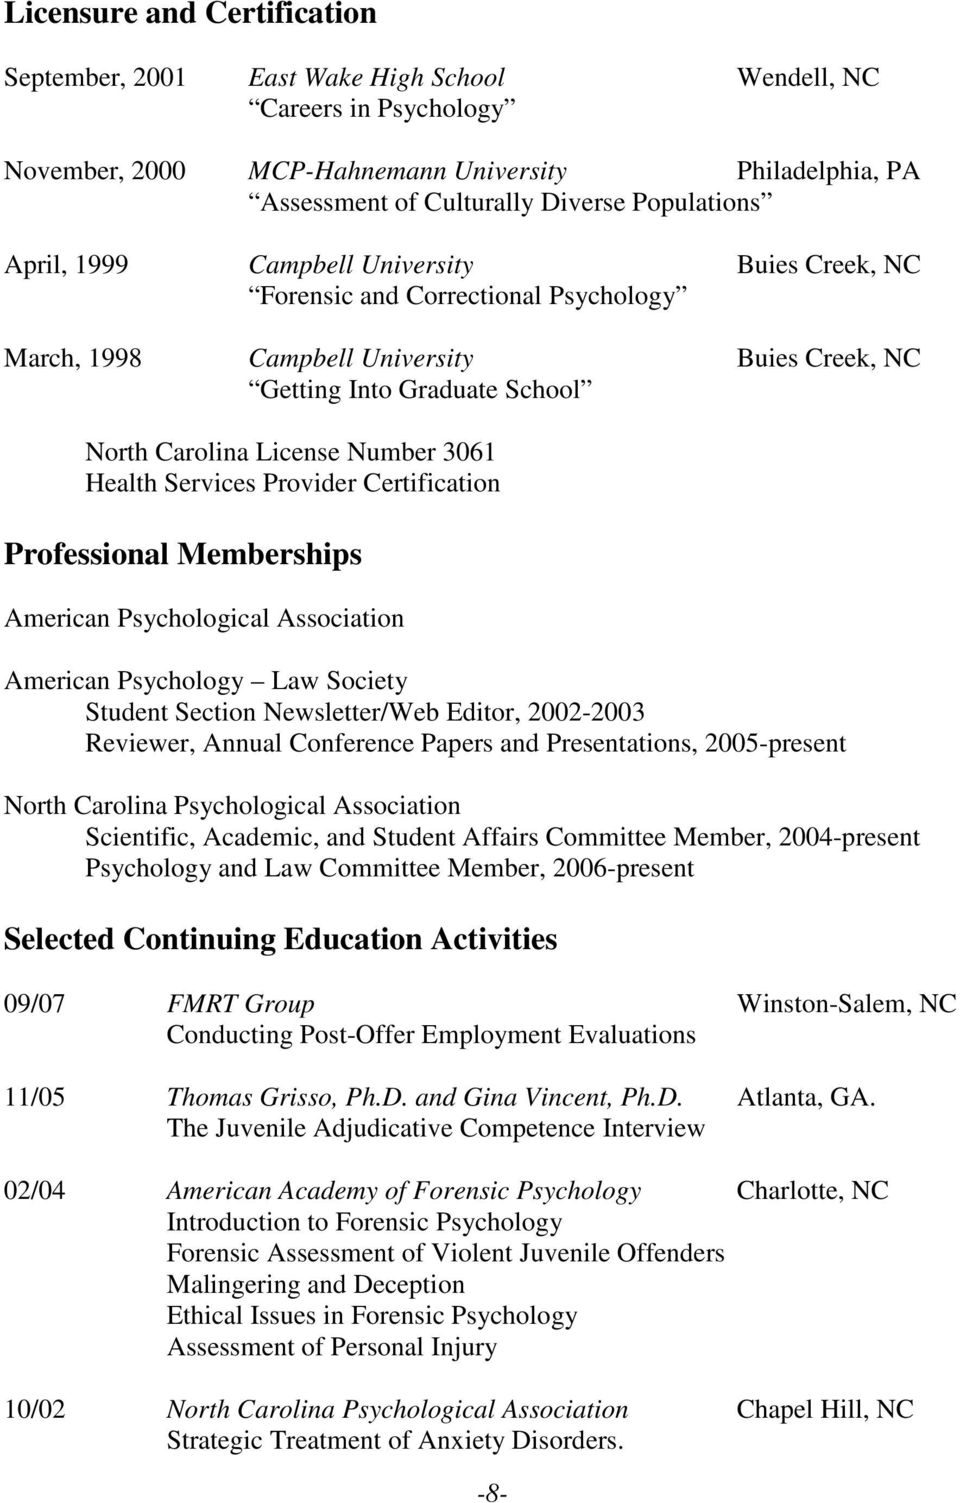 Number 3061 Health Services Provider Certification Professional Memberships American Psychological Association American Psychology Law Society Student Section Newsletter/Web Editor, 2002-2003